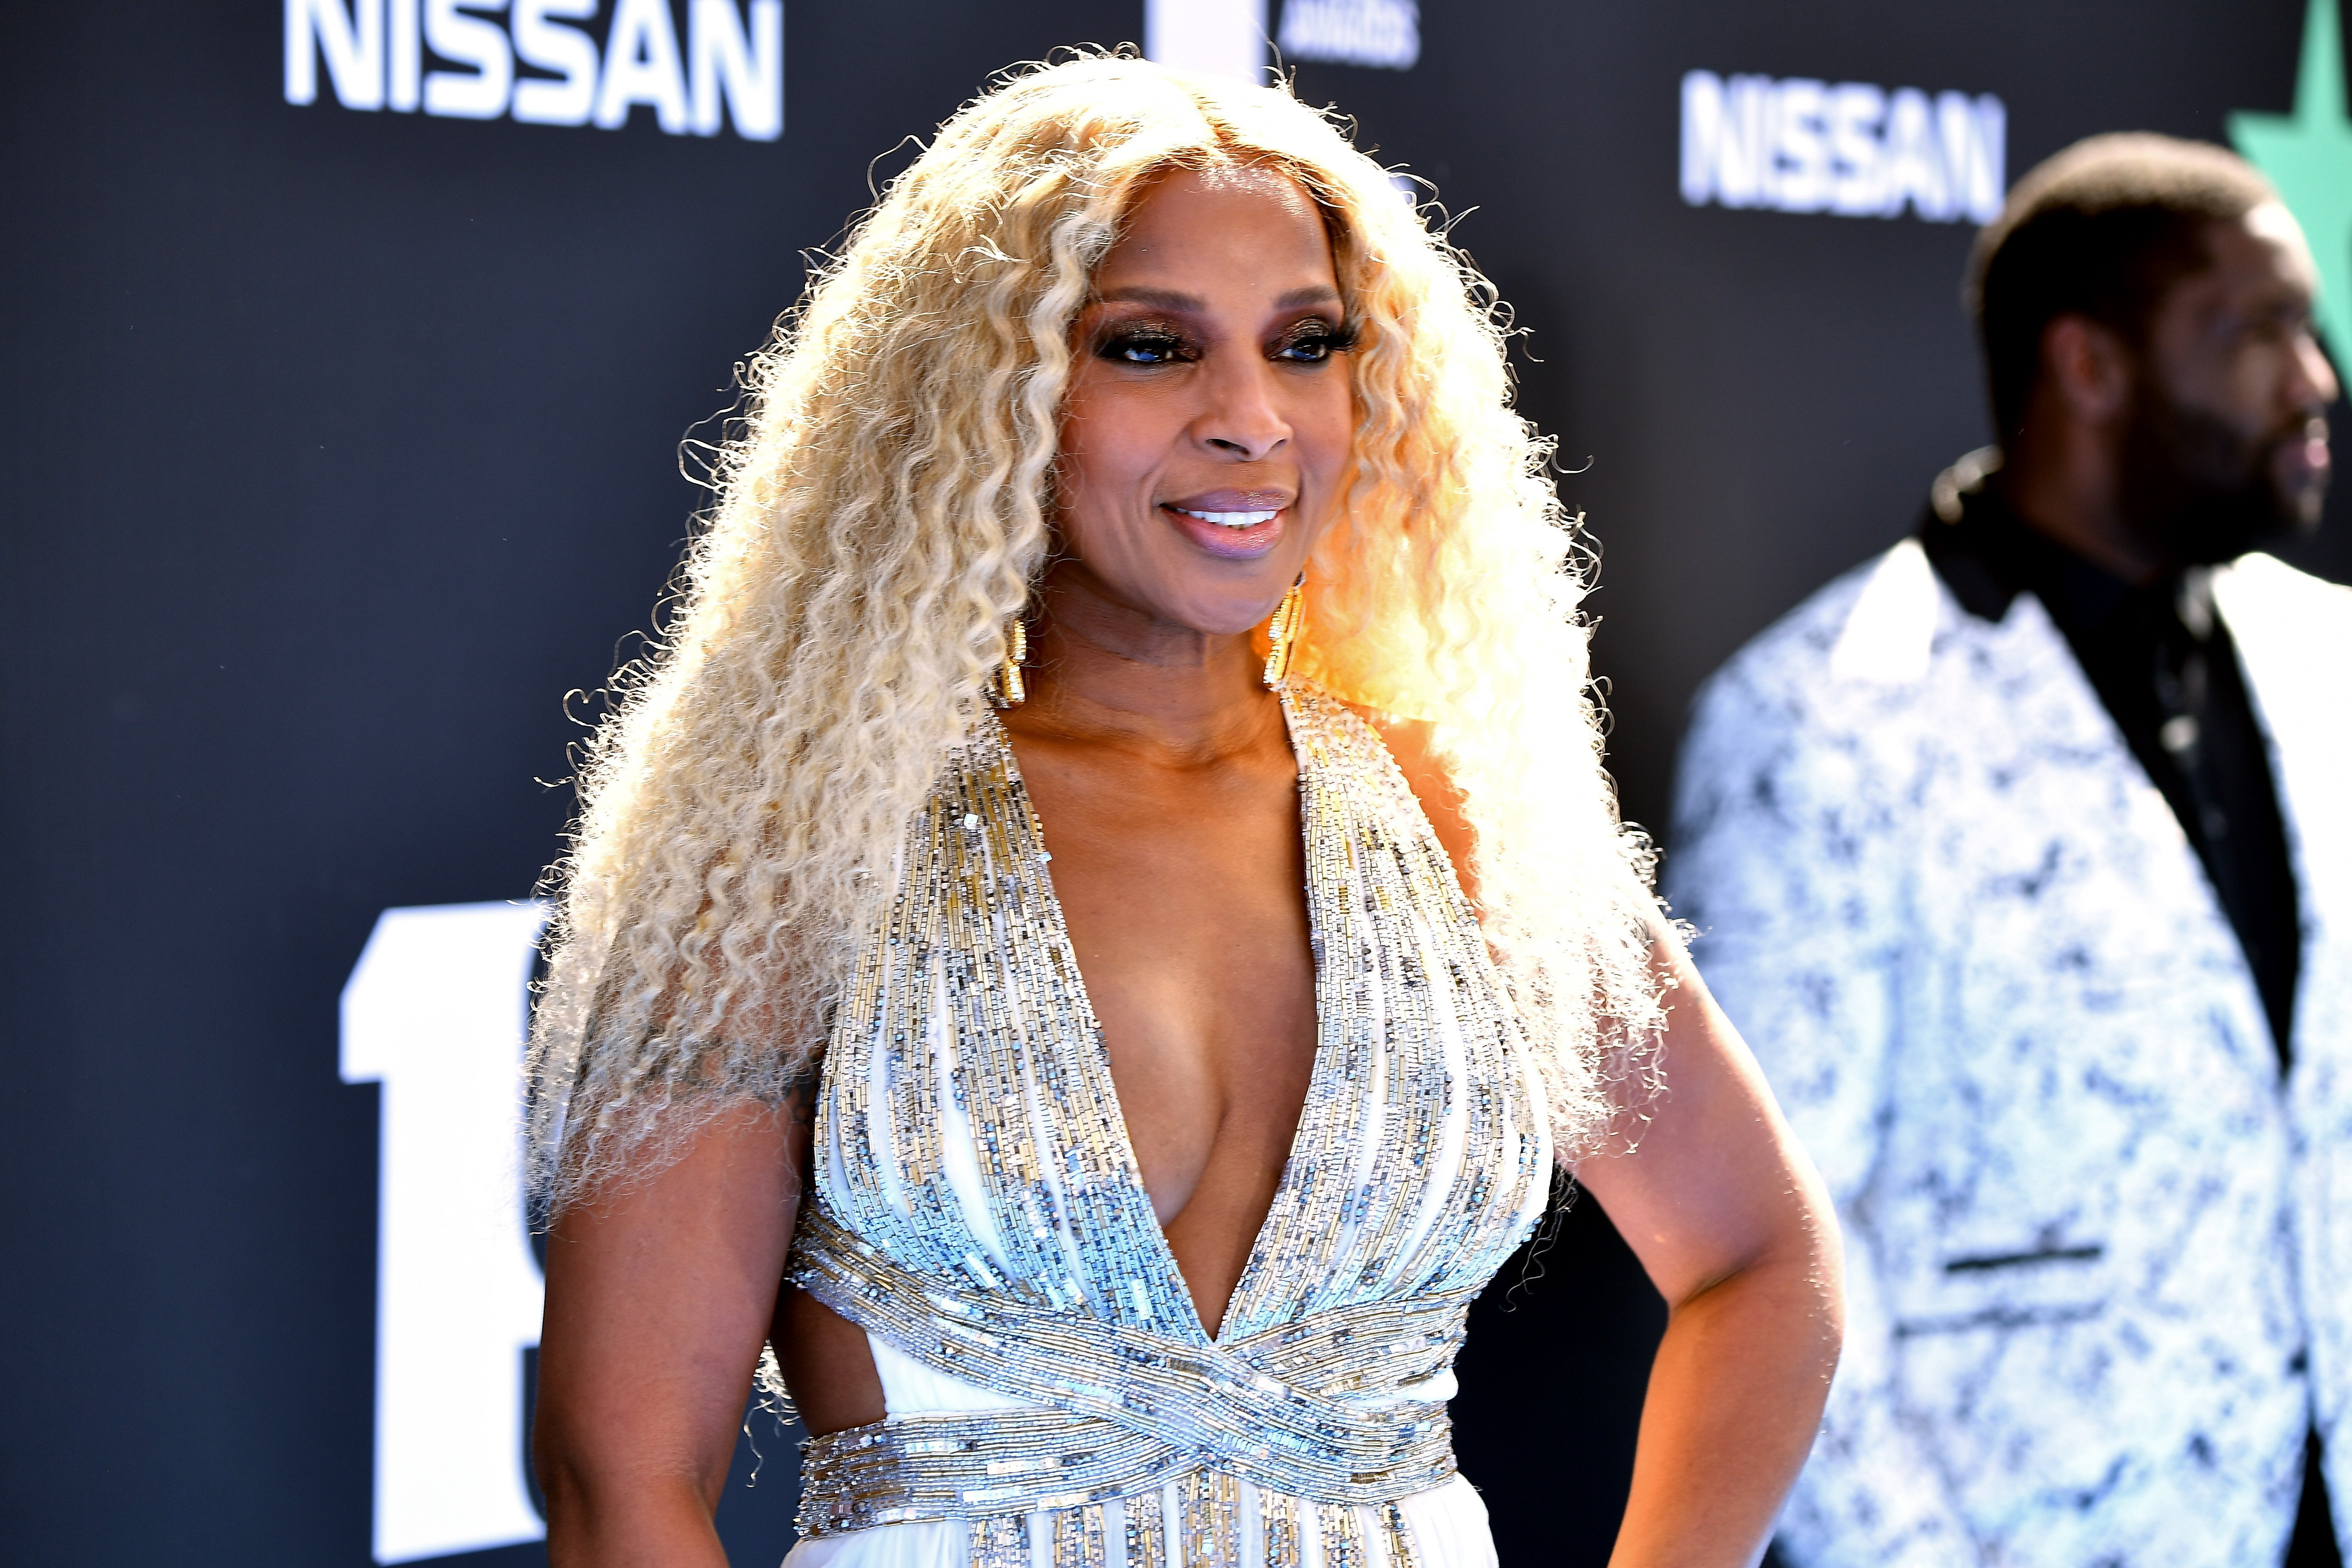 Mary J. Blige attends the BET Awards on June 23, 2019 in Los Angeles, California | Photo: Getty Images